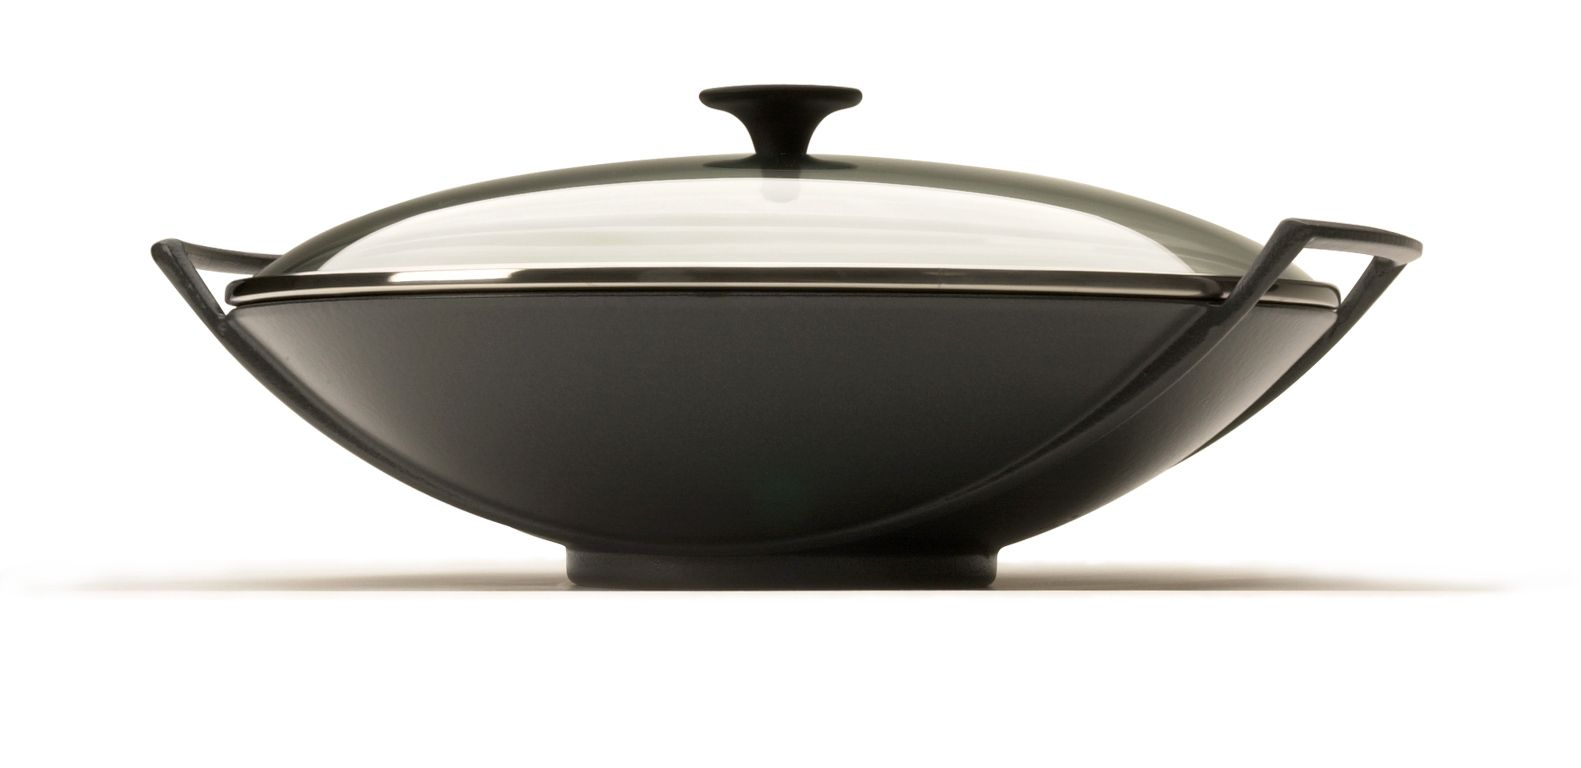 Cashback 36cm wok with glass lid by Le Creuset